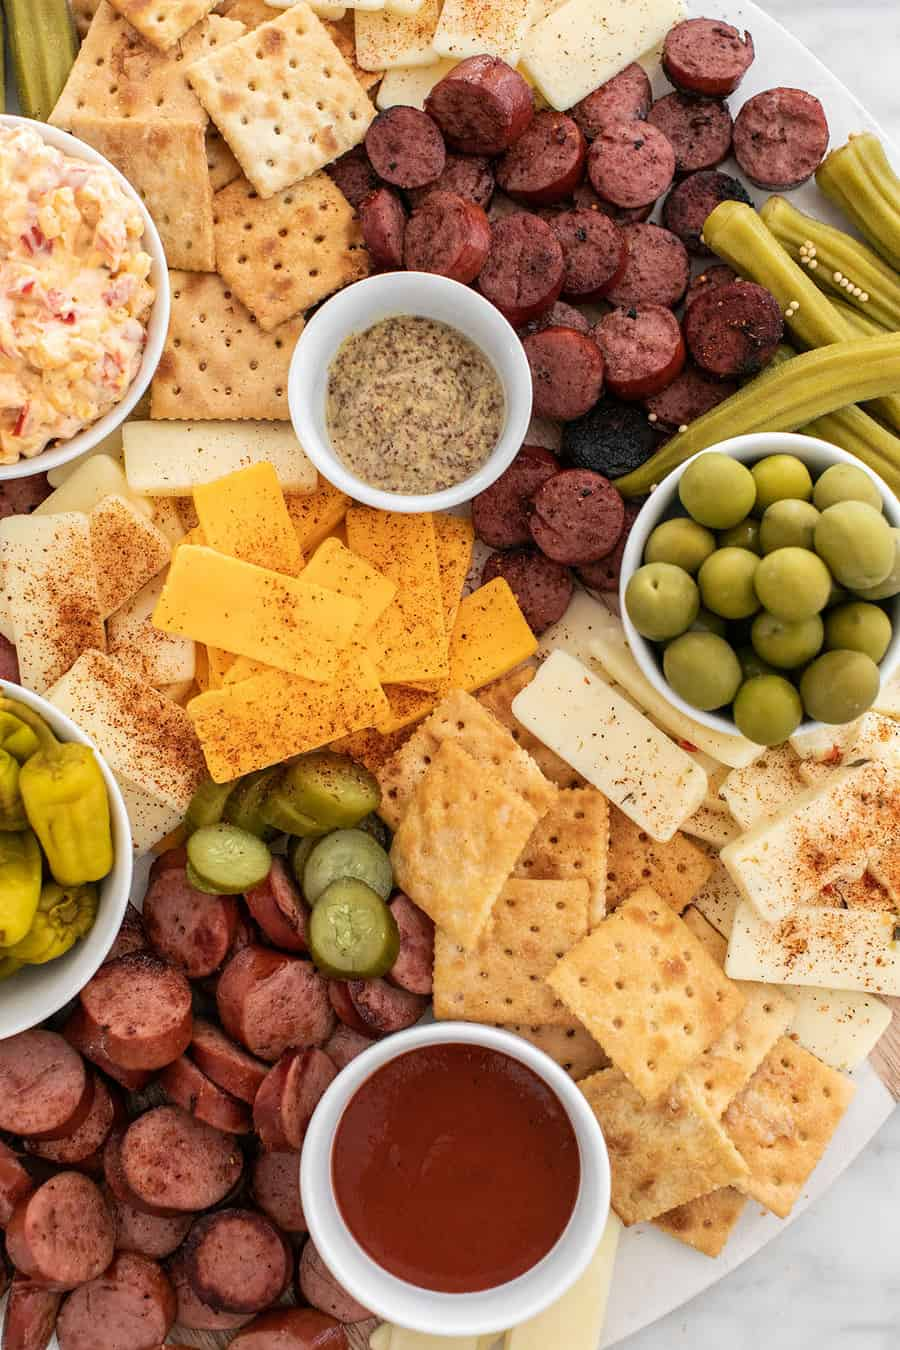 Souther charcuterie board with sausage, cheese, pickled vegetables, olives, pimento cheese and crackers.